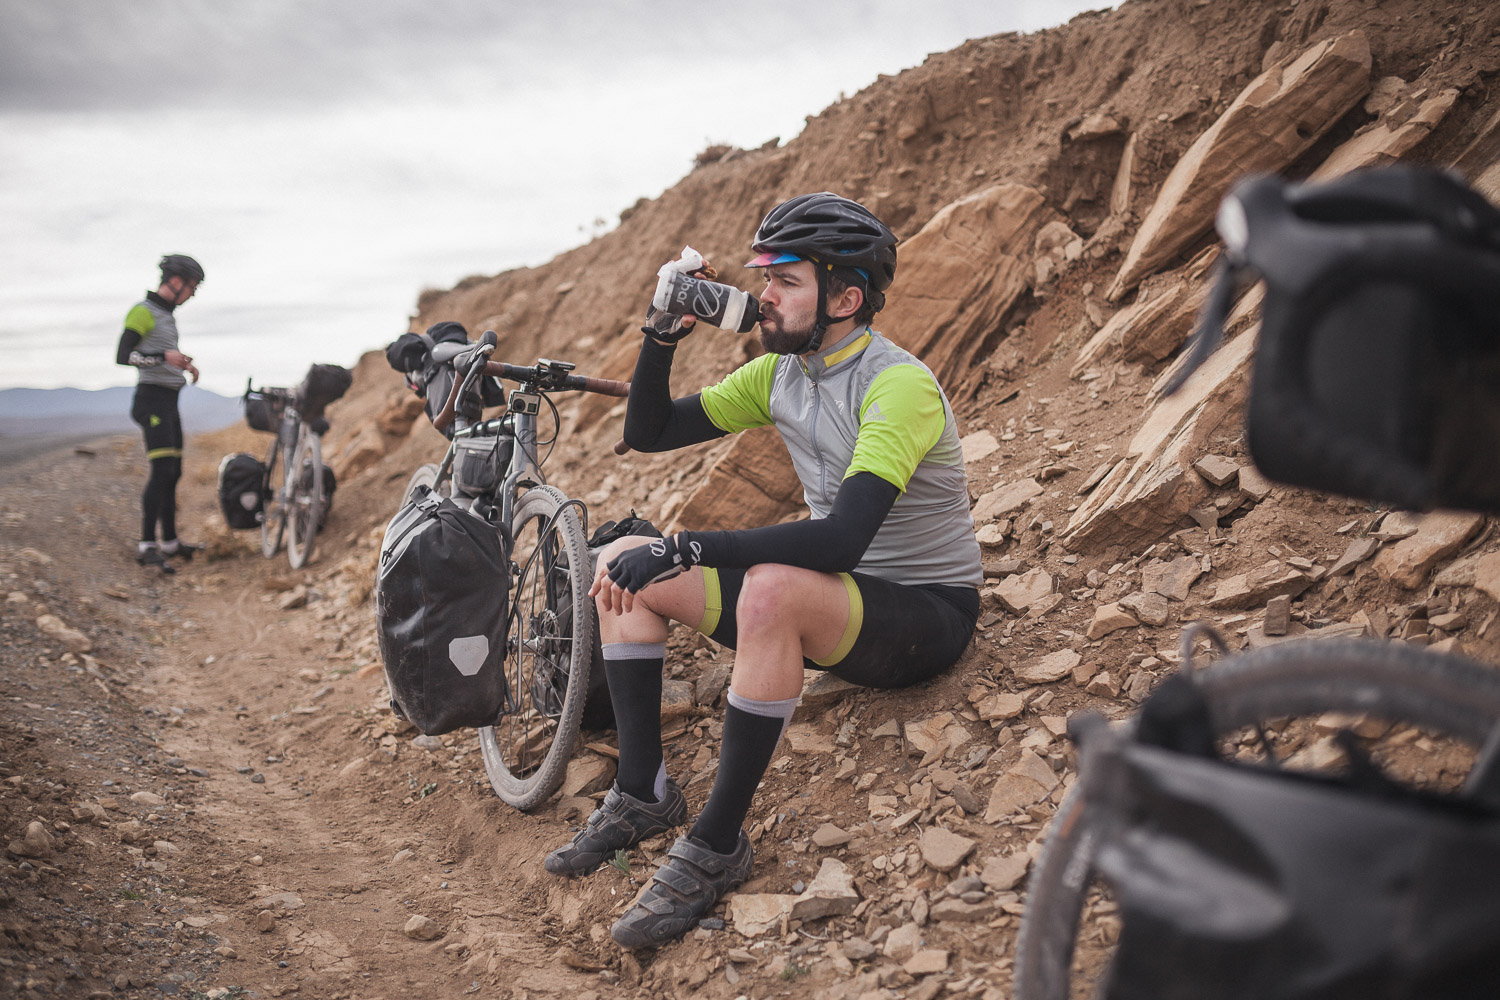 8bar bikes adventures morocco gravel 20151214 0055 bearbeitet - 8bar Adventures - Morocco - High Atlas - Part 2/2